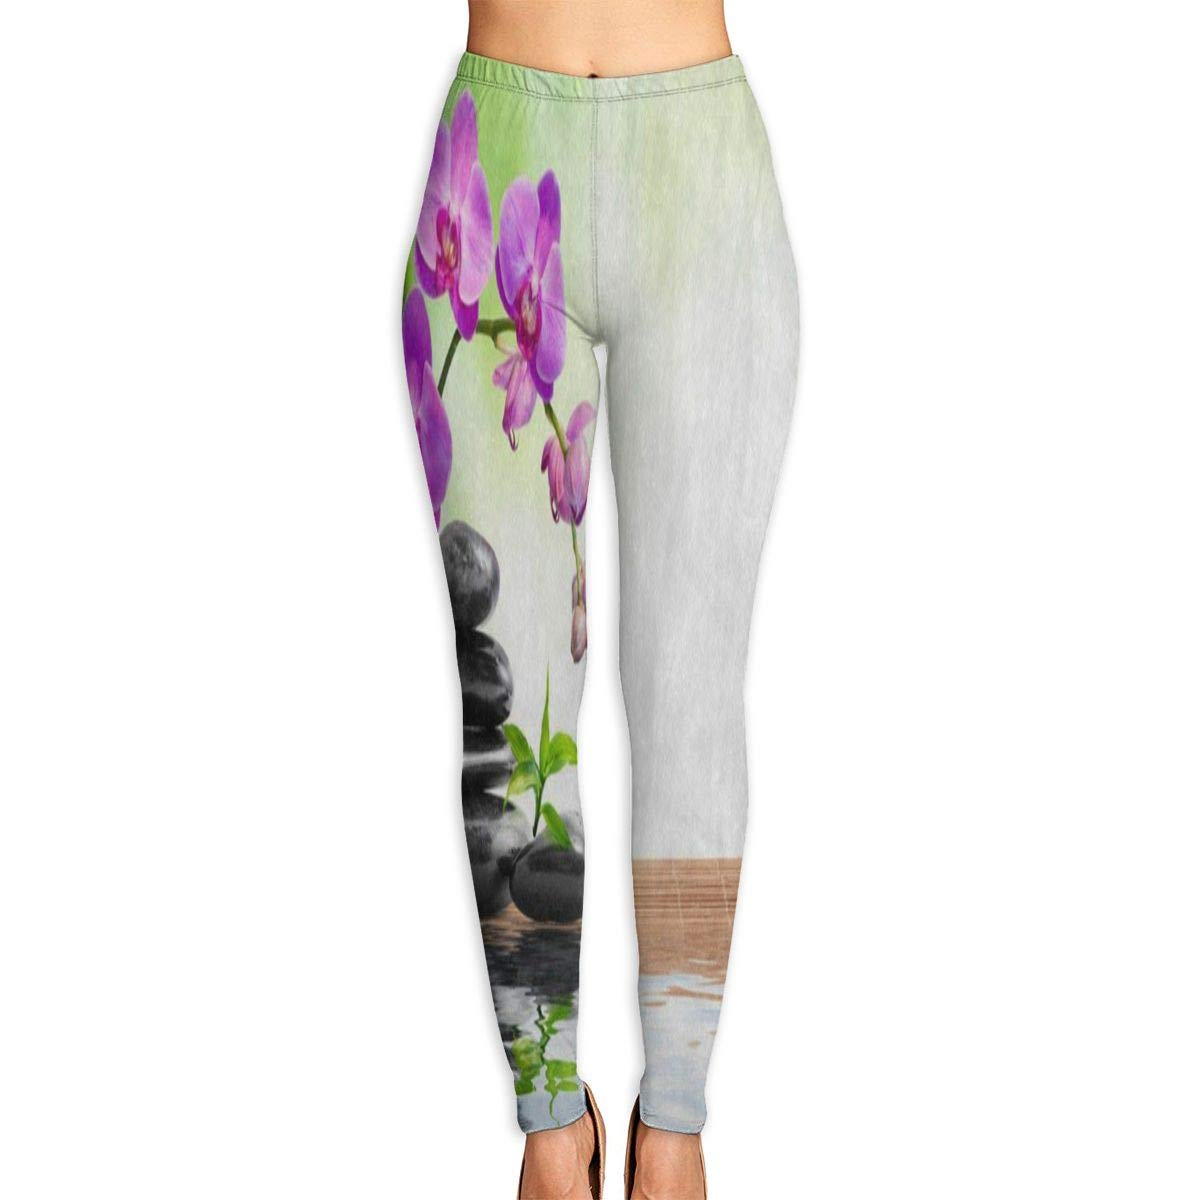 1c54a52441b1dd Custom Yoga Pants Stone Water Zen Pink Floral Bamboo Leggings Pants for  Yoga Running Pilates Gym for Women, Men Girls at Amazon Women's Clothing  store: